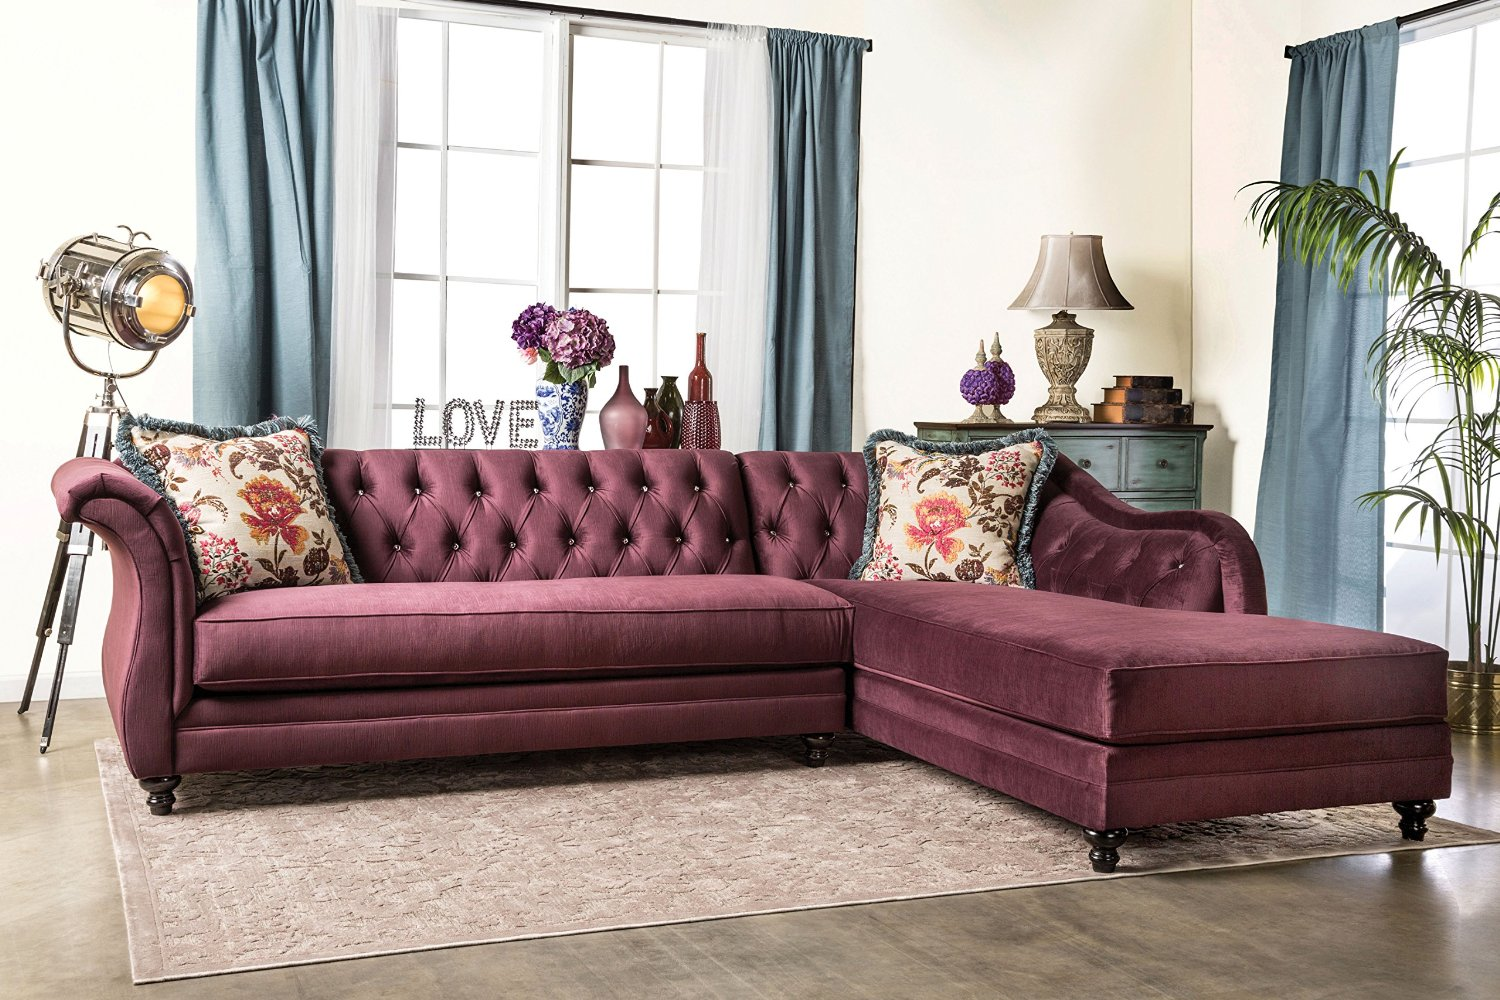 Phenomenal Couches Near Me Cheap Furniture Exquisite Cheap Living Room Creativecarmelina Interior Chair Design Creativecarmelinacom